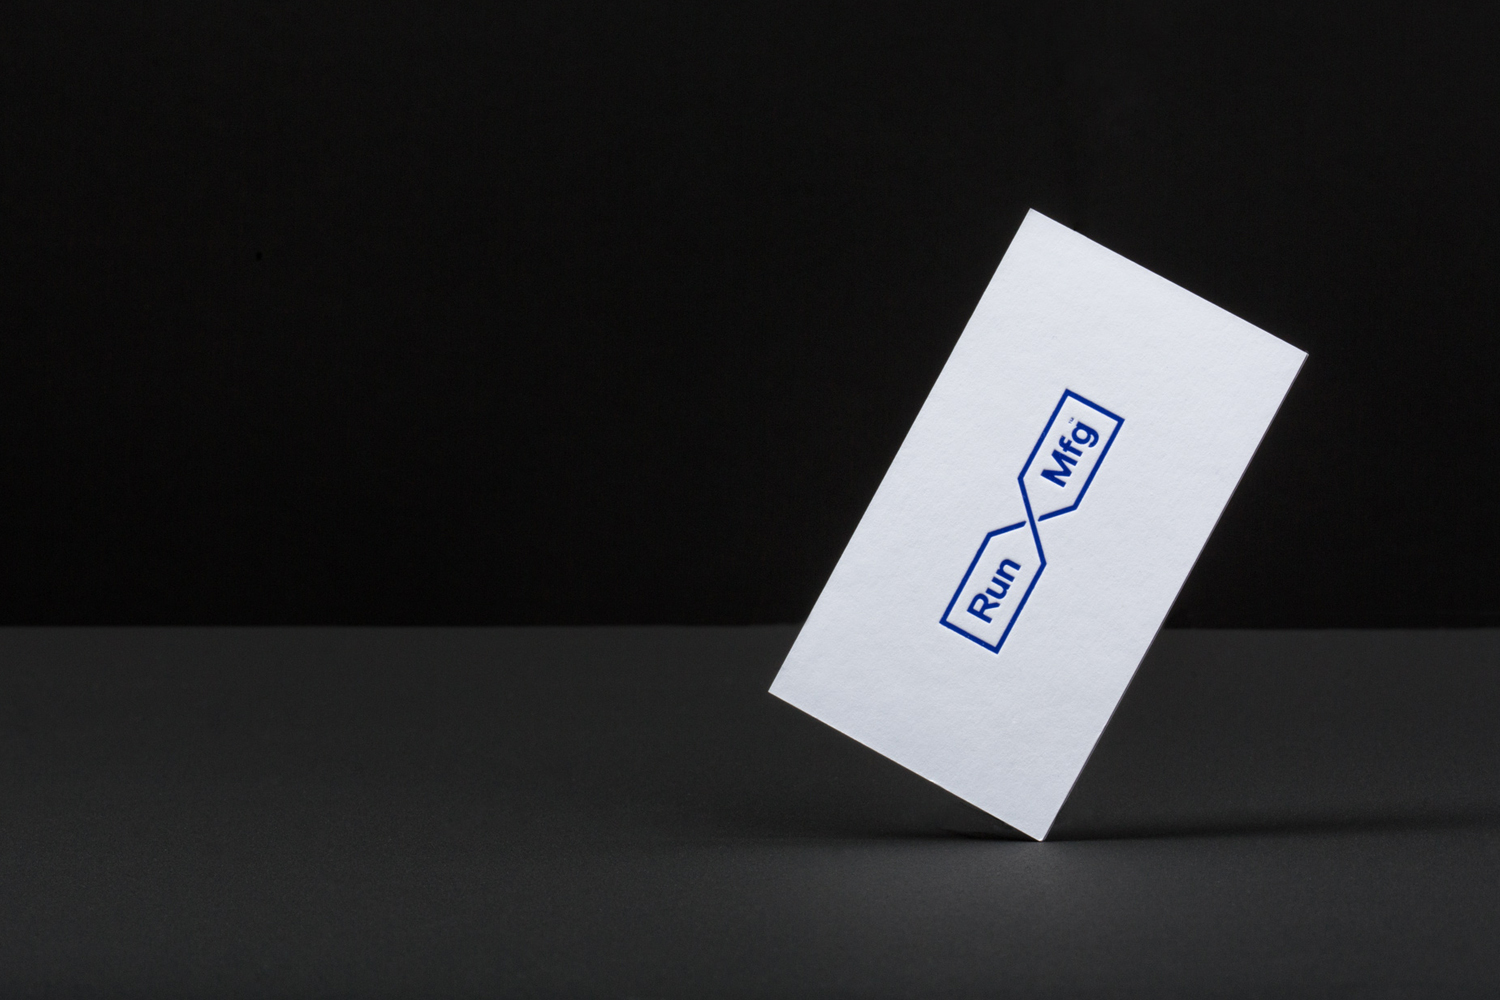 Logo and business cards by Perky Bros for Chicago-based independent race design and production company Run Mfg